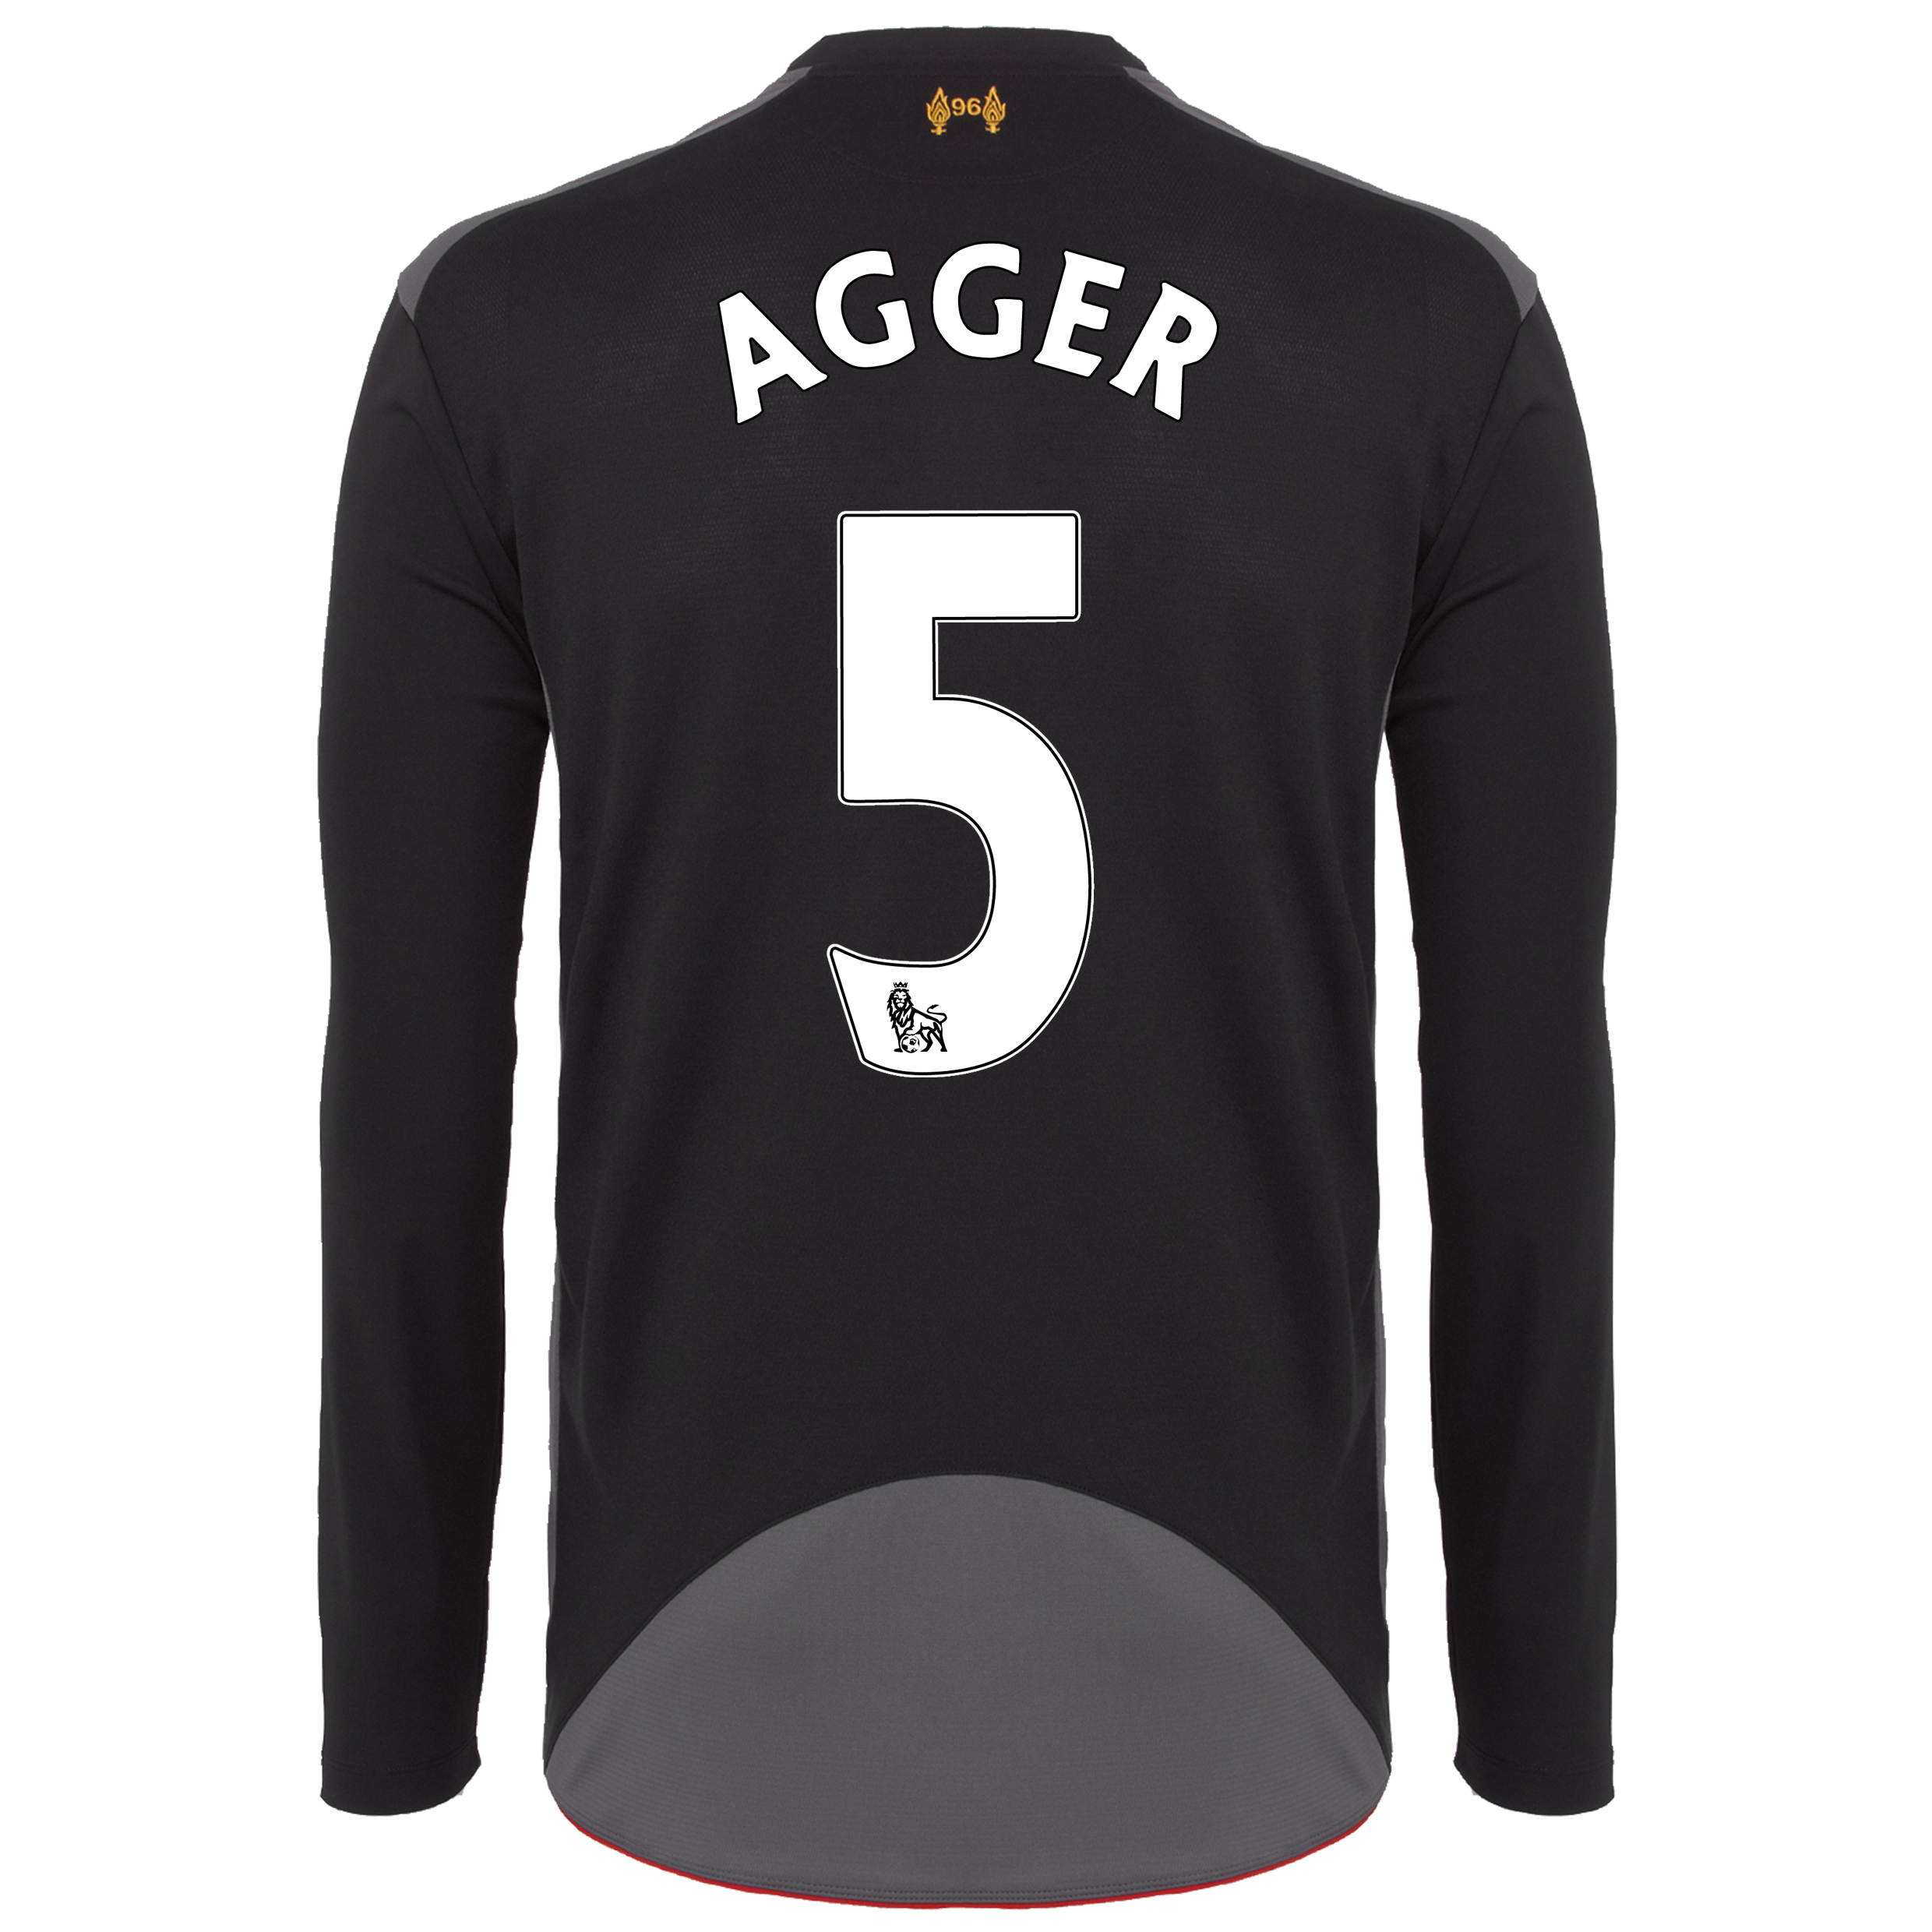 Liverpool Away Shirt 2012/13 - Long Sleeve - Kids with Agger 5 printing